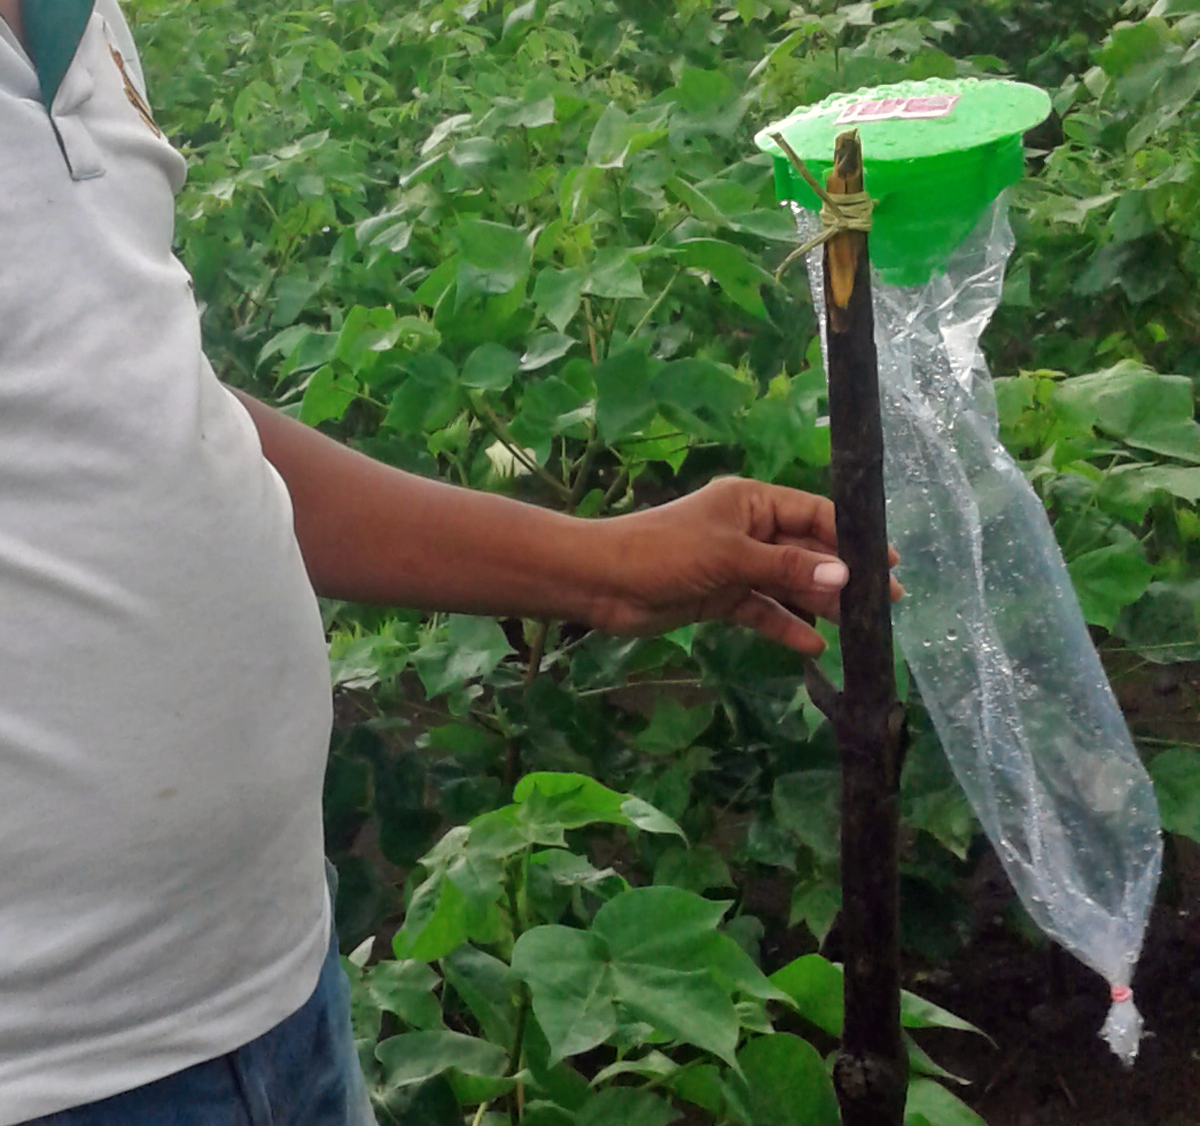 Pheromone traps are provided at a subsidised rate to the farmers. But farmers have found them to be ineffective in trapping pests. Photo credit: Meena Menon